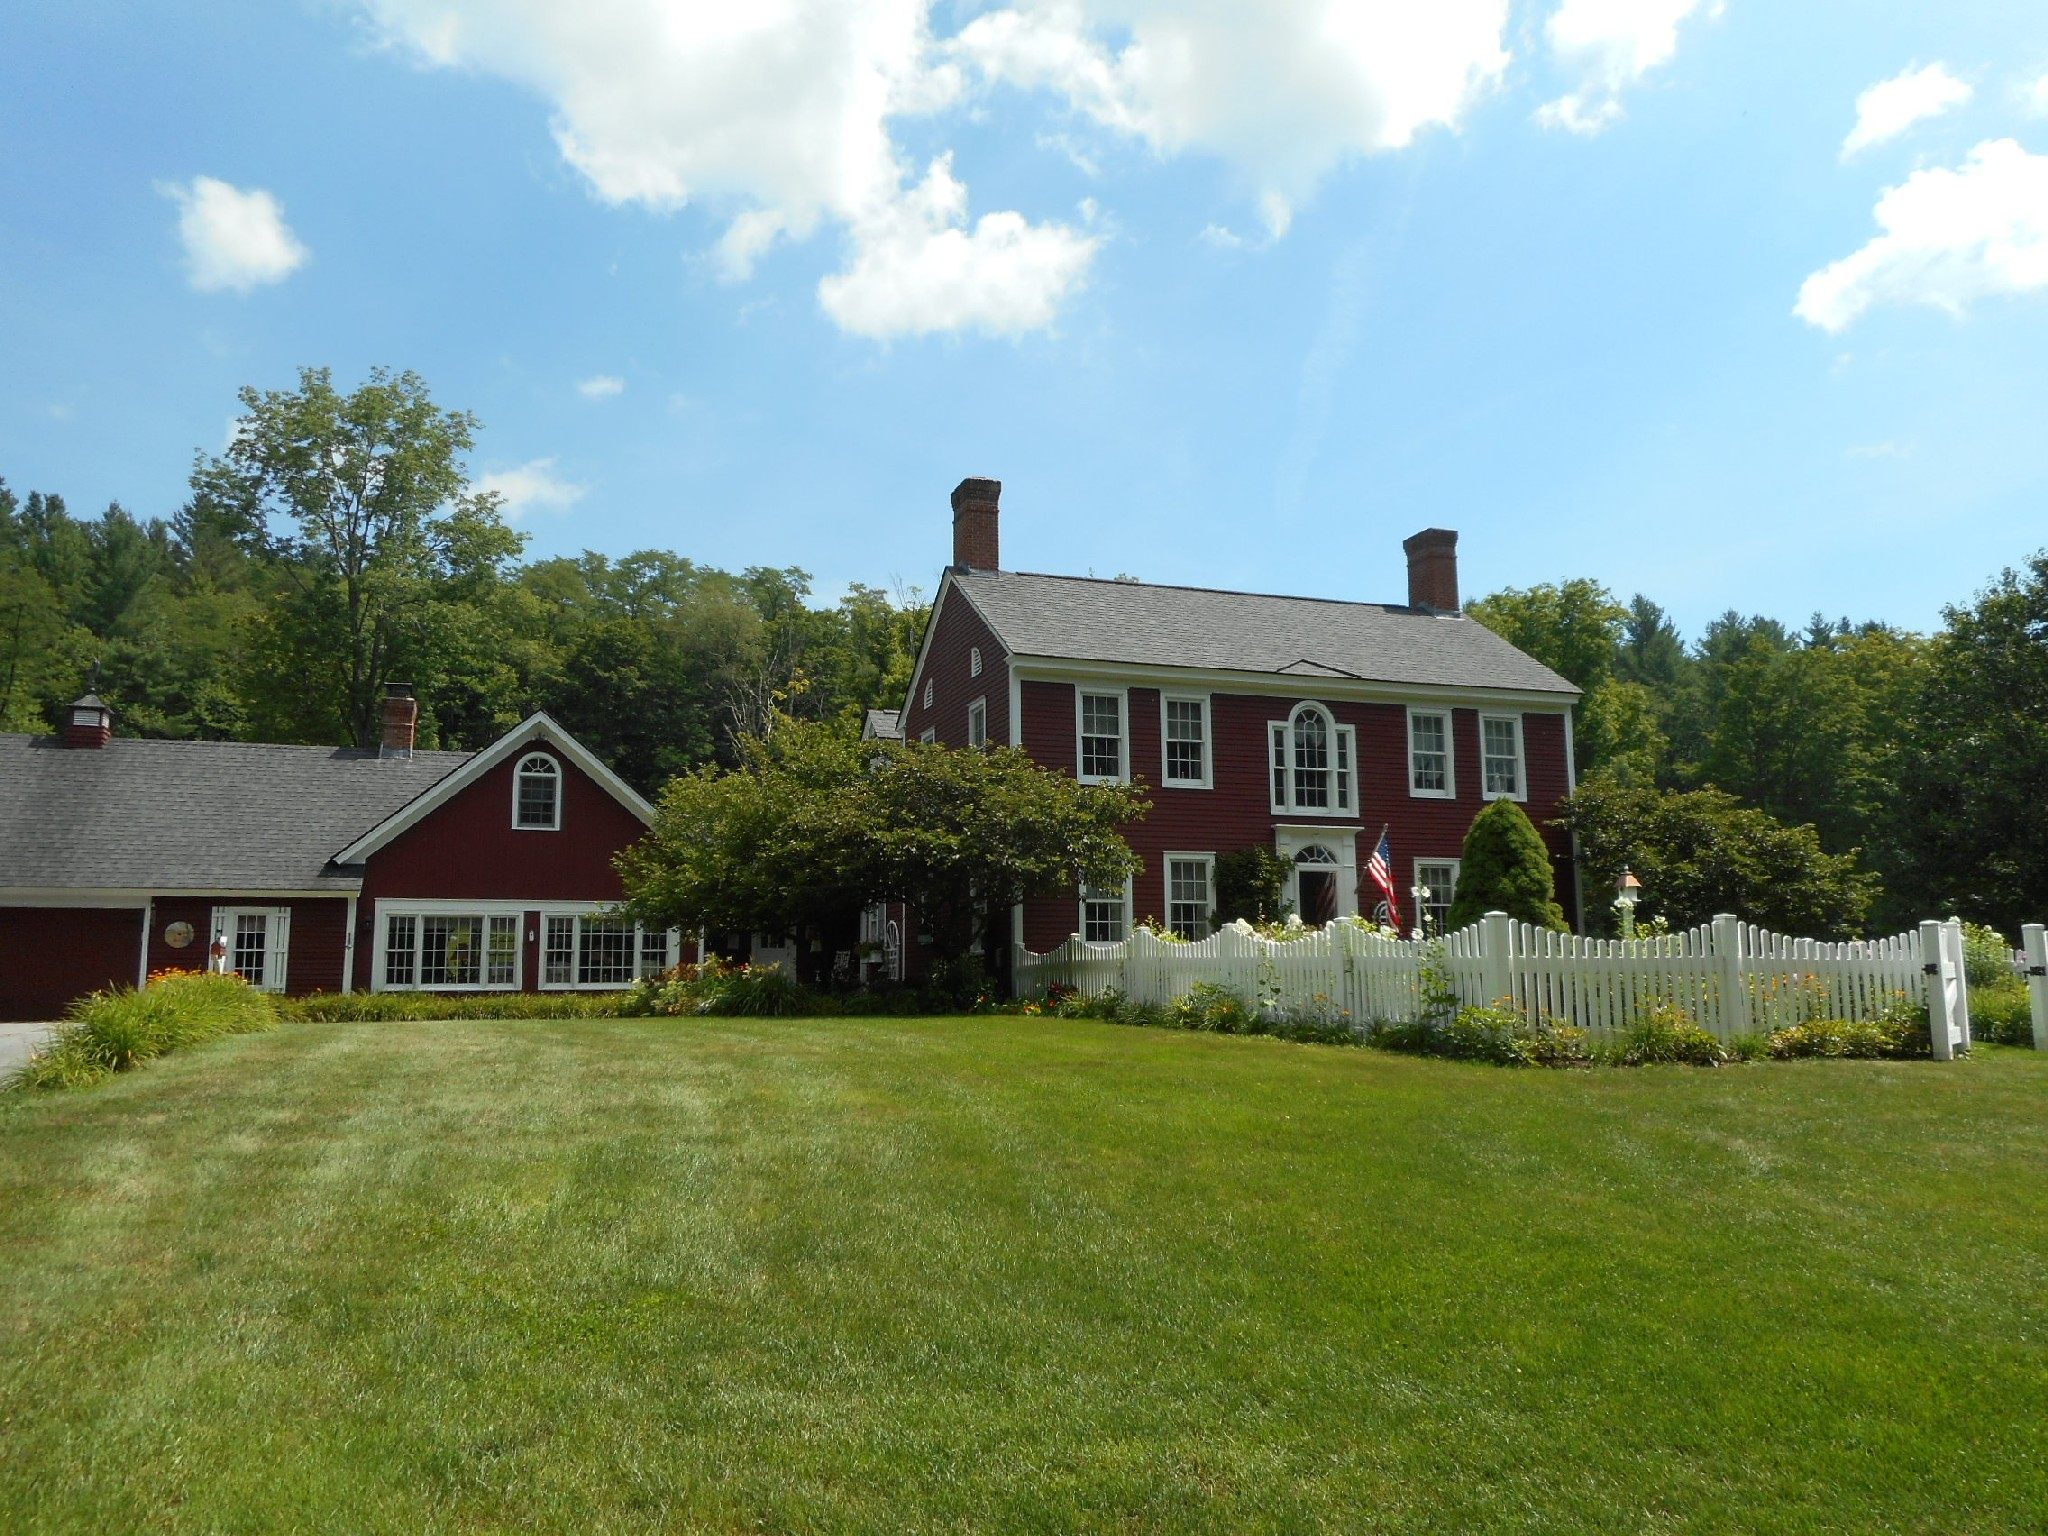 Single Family Home for Sale at Gentleman's Farm 364 Houghtonville Rd Grafton, Vermont 05146 United States